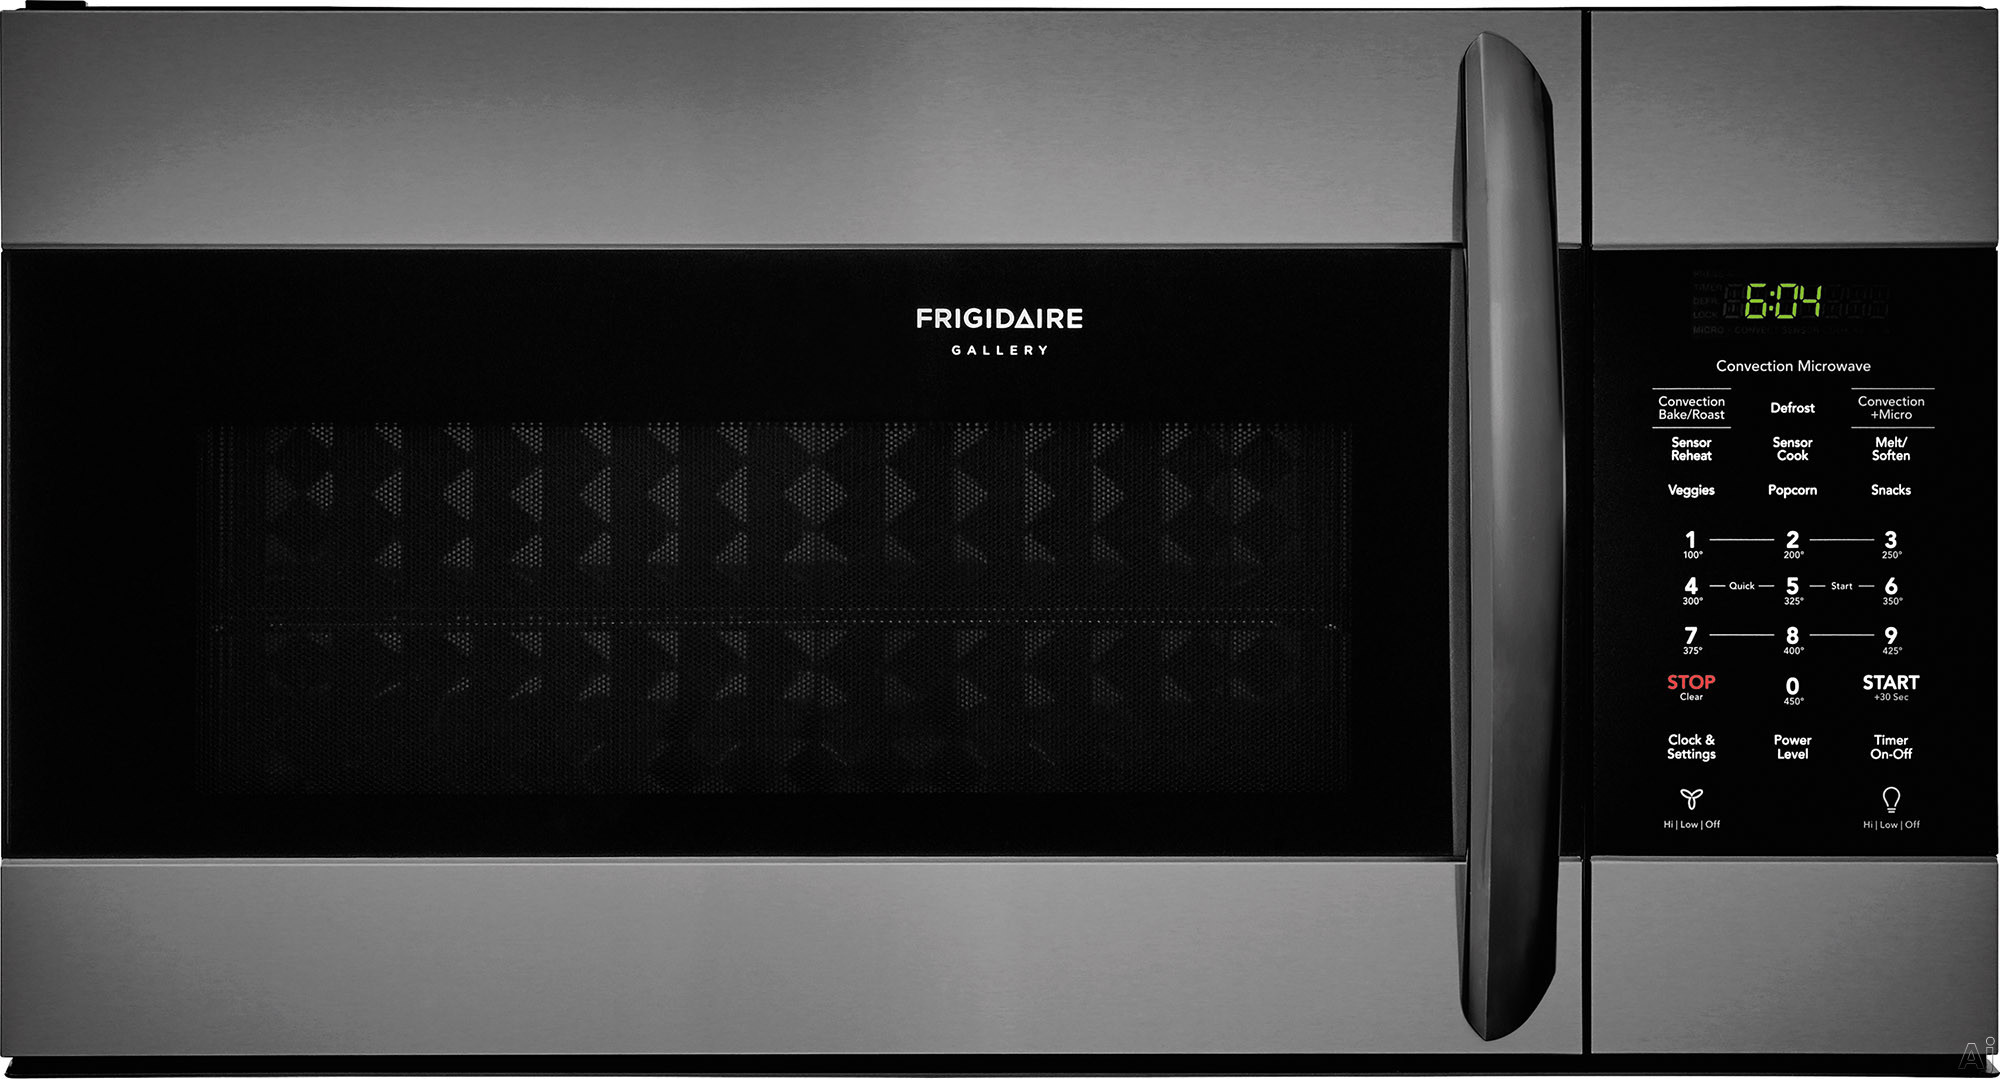 """Frigidaire Gallery Series FGMV155CTD 30 Inch Over the Range Microwave with Convection Option, Sensor Cooking, SpaceWise® Rack, One-Touch Options, PureAir® Microwave Filter, Effortless Cleanâ"""""""